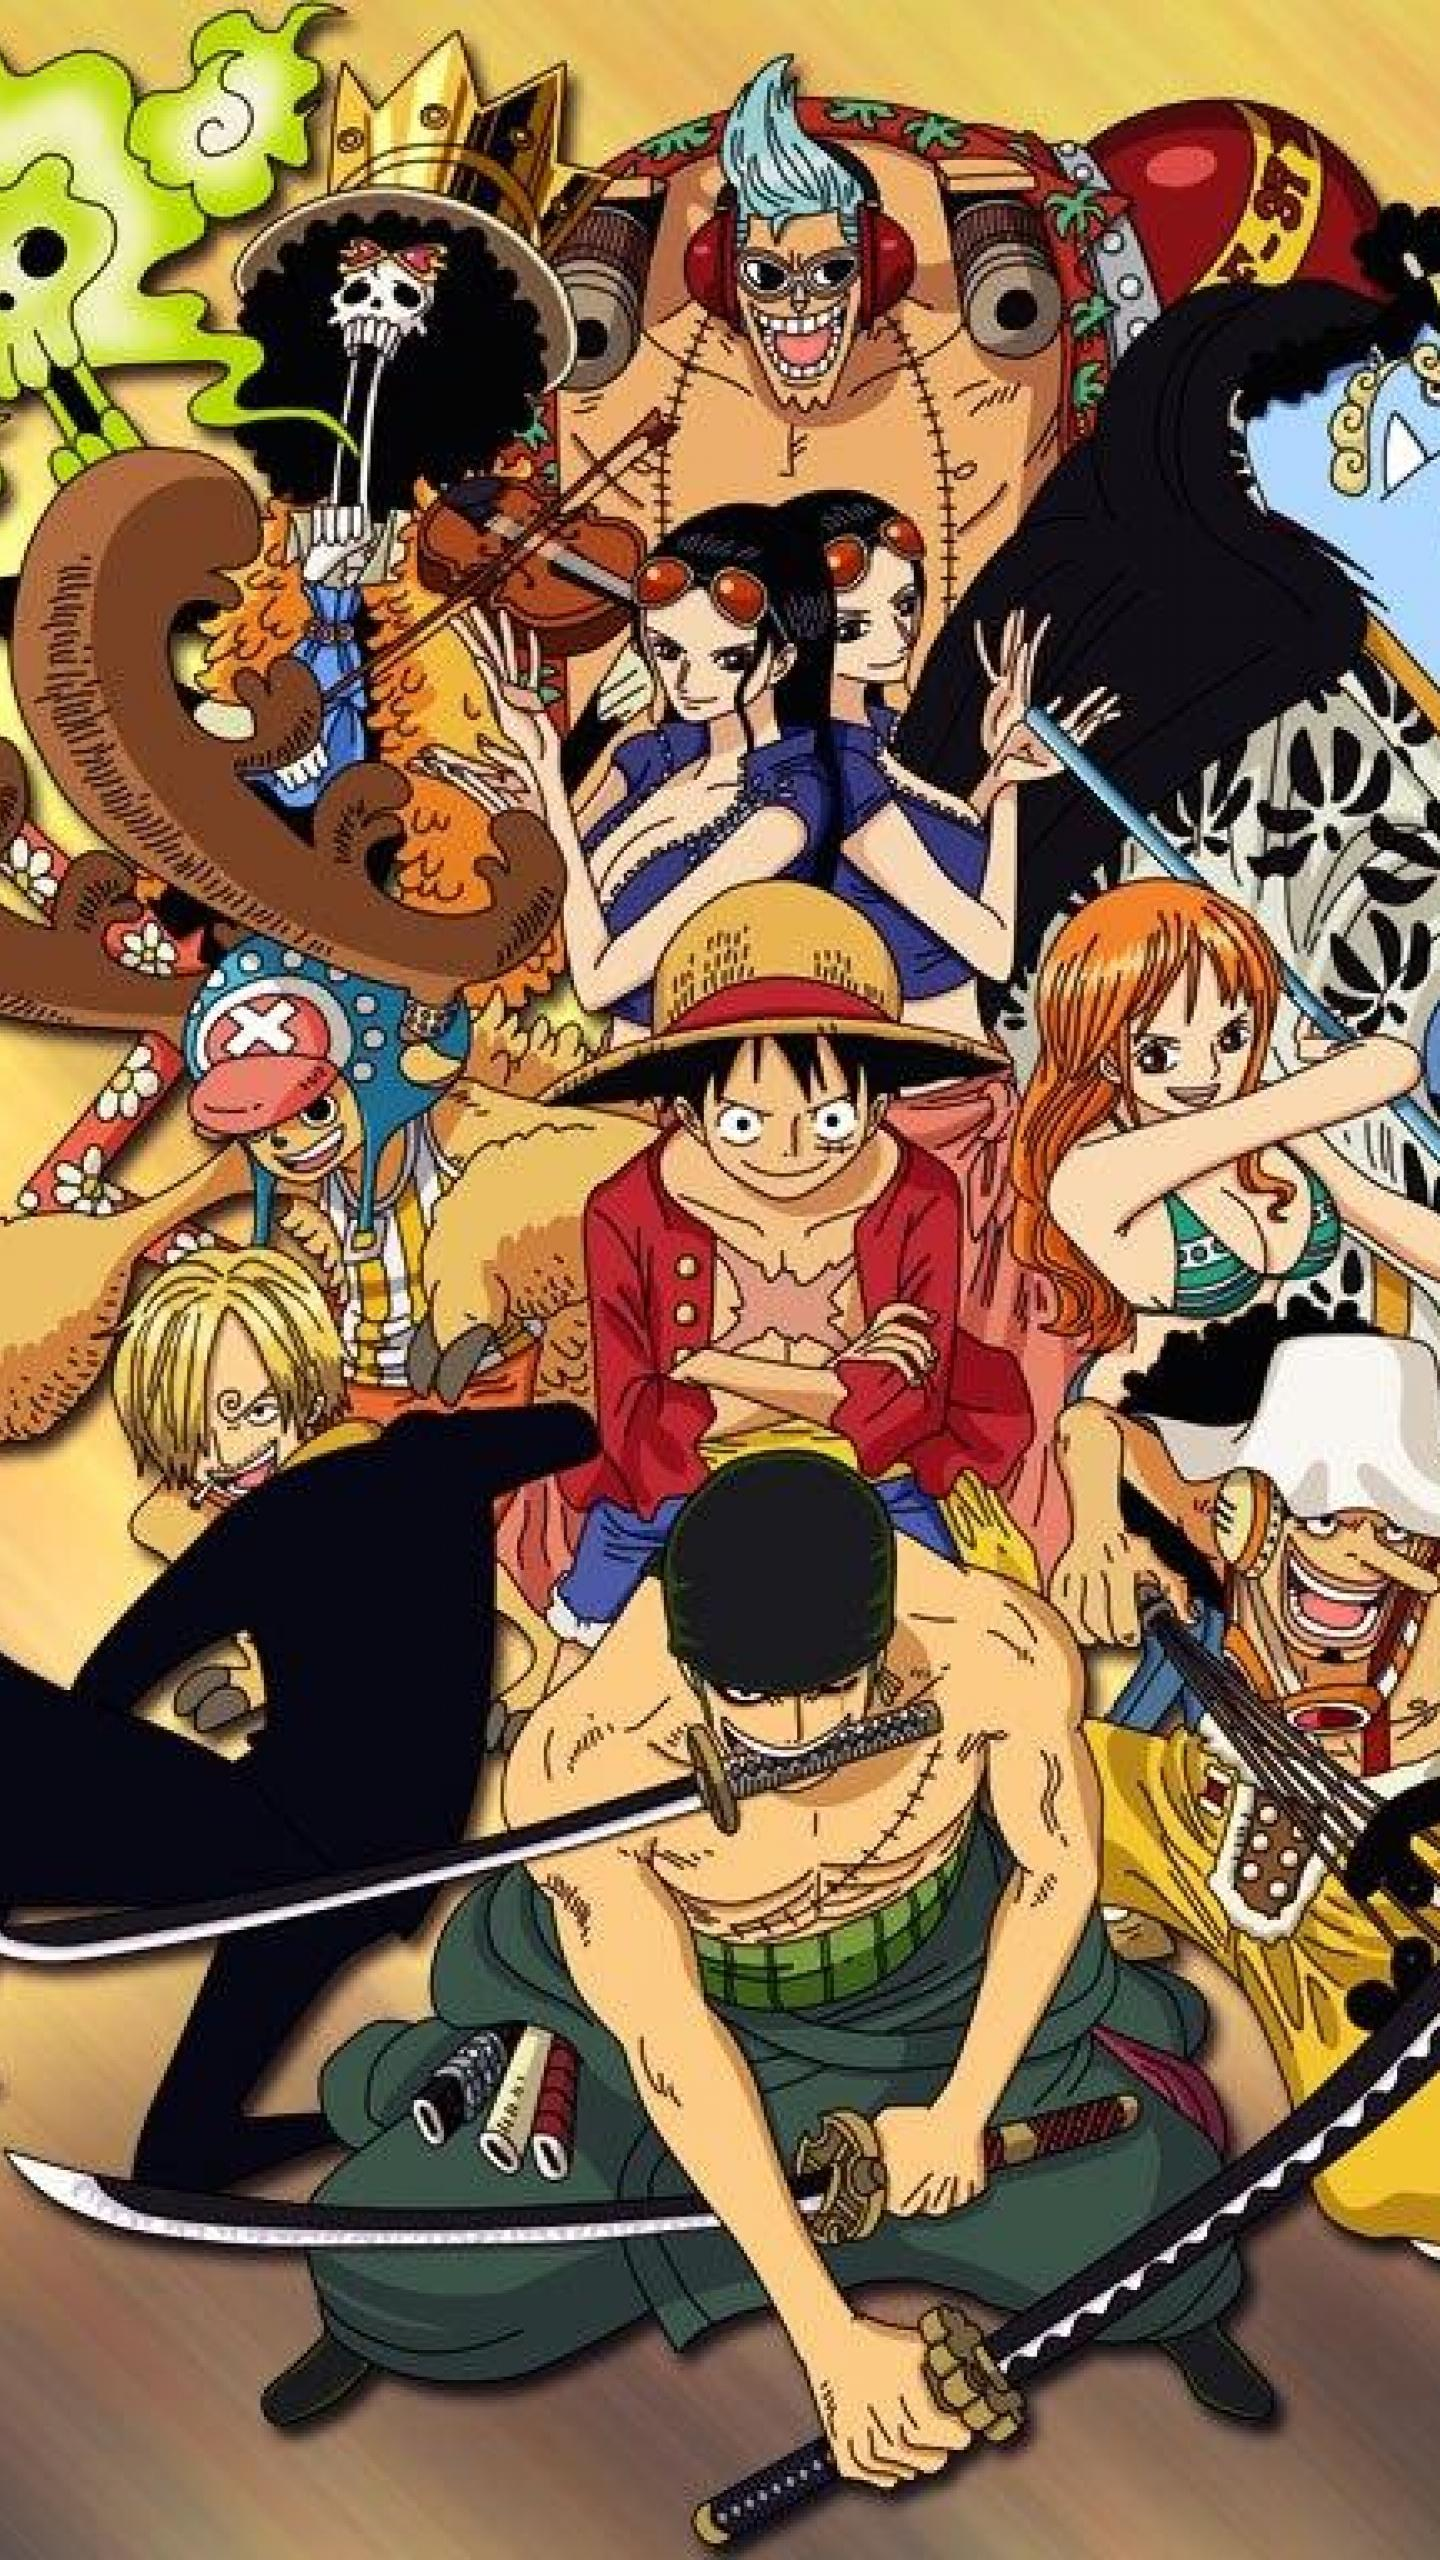 Wallpaper Pemandangan One Piece Wallpaper For Oppo